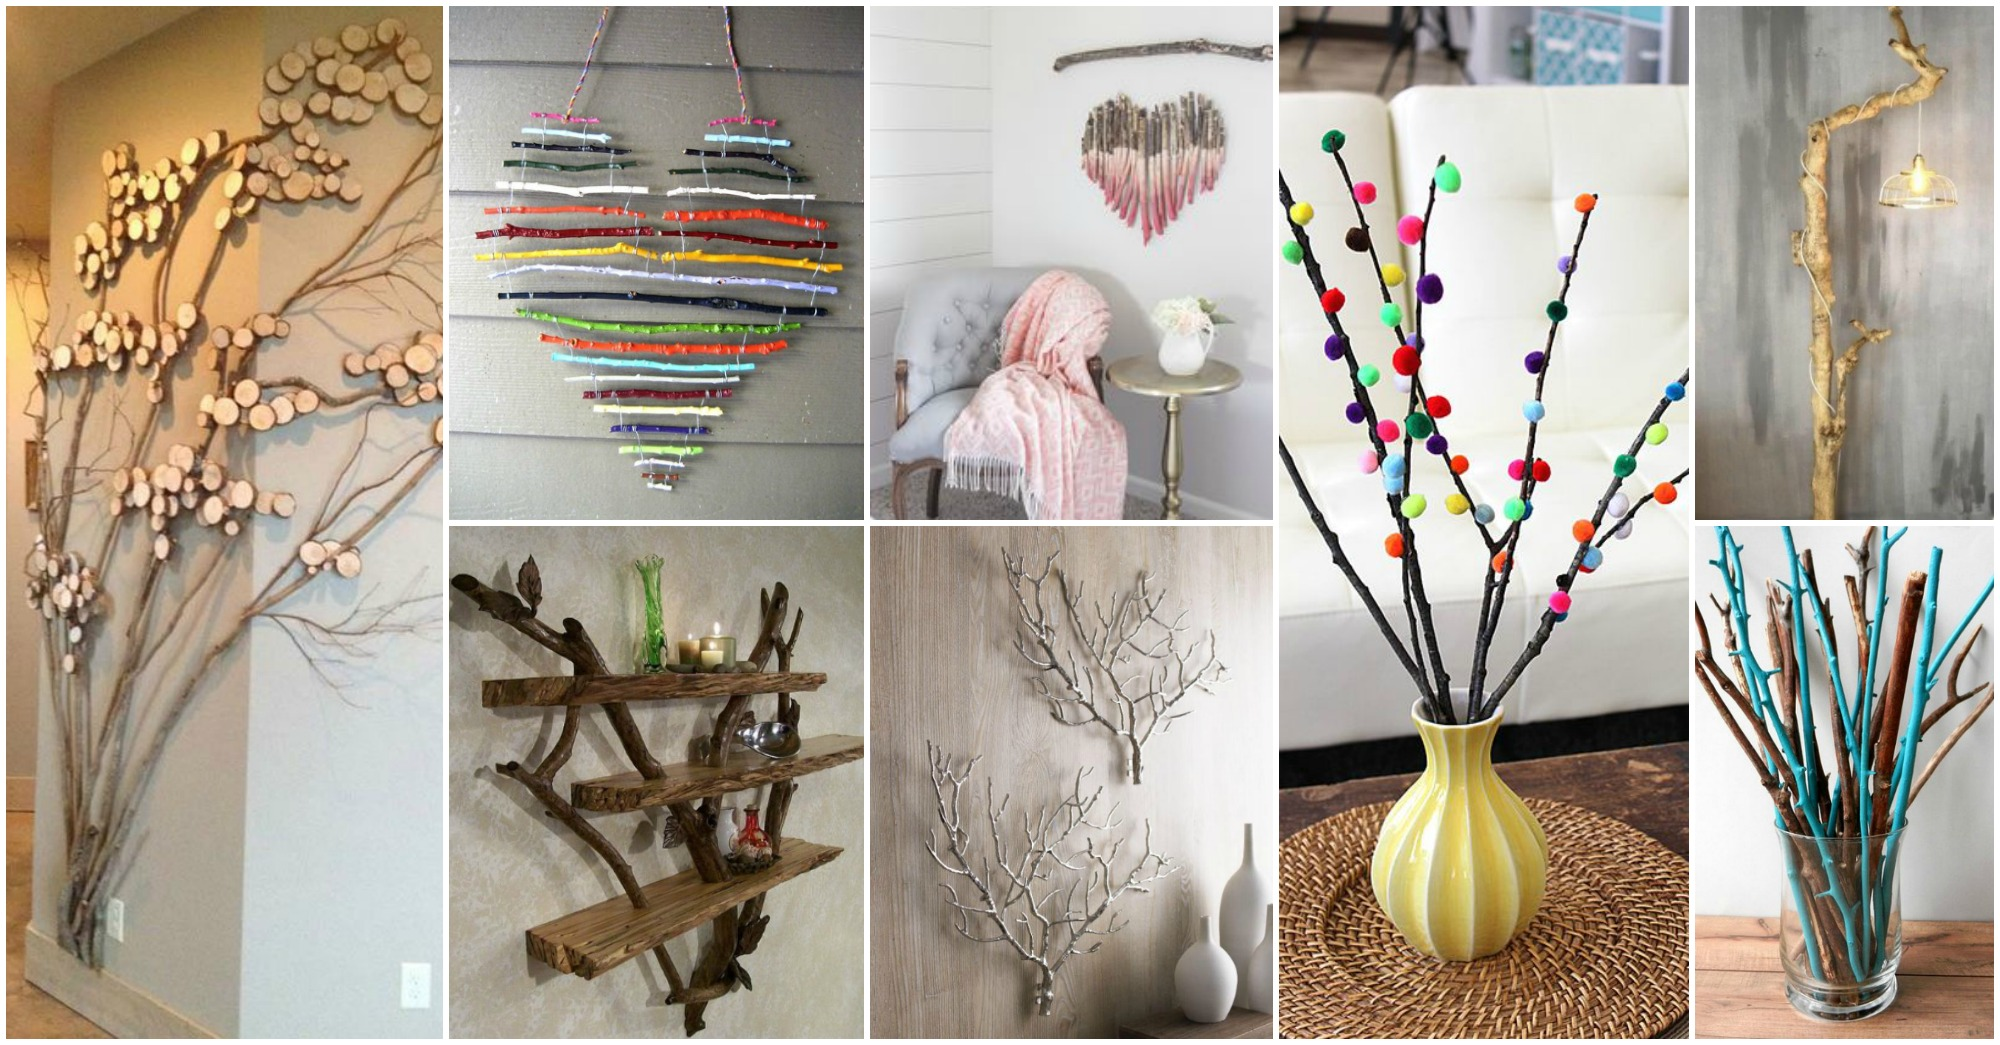 Fullsize Of Diy Decor Ideas